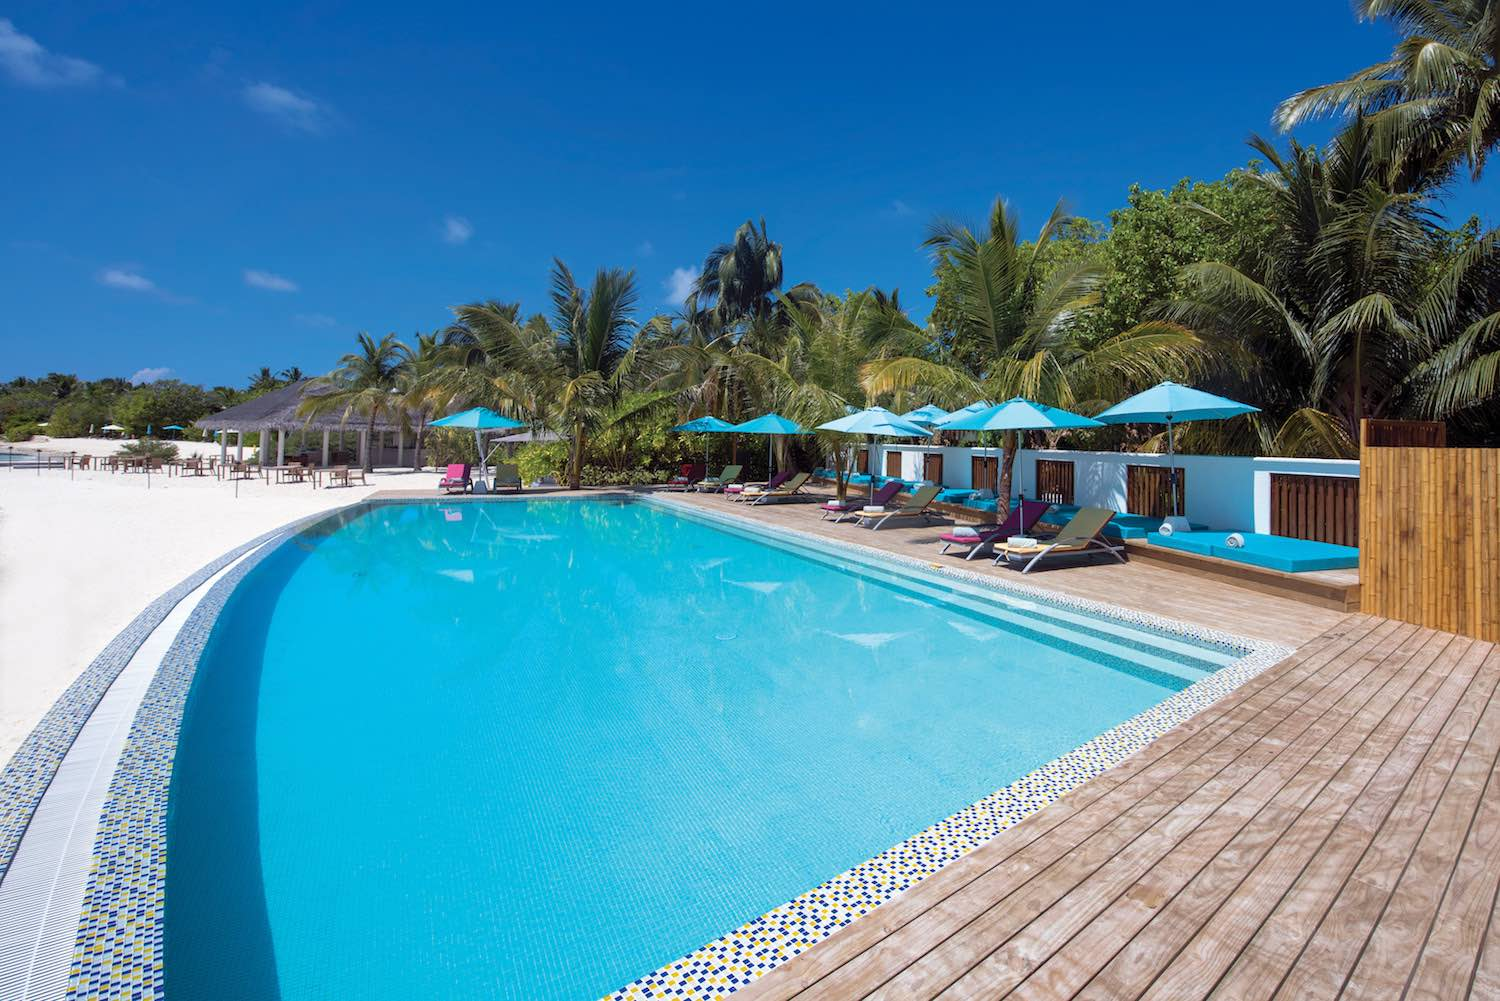 maldives-oblu-by-atmosphere-at-helengeli-adult-only-pool-2-holiday-honeymoon-vacation-invite-to-paradise.jpg